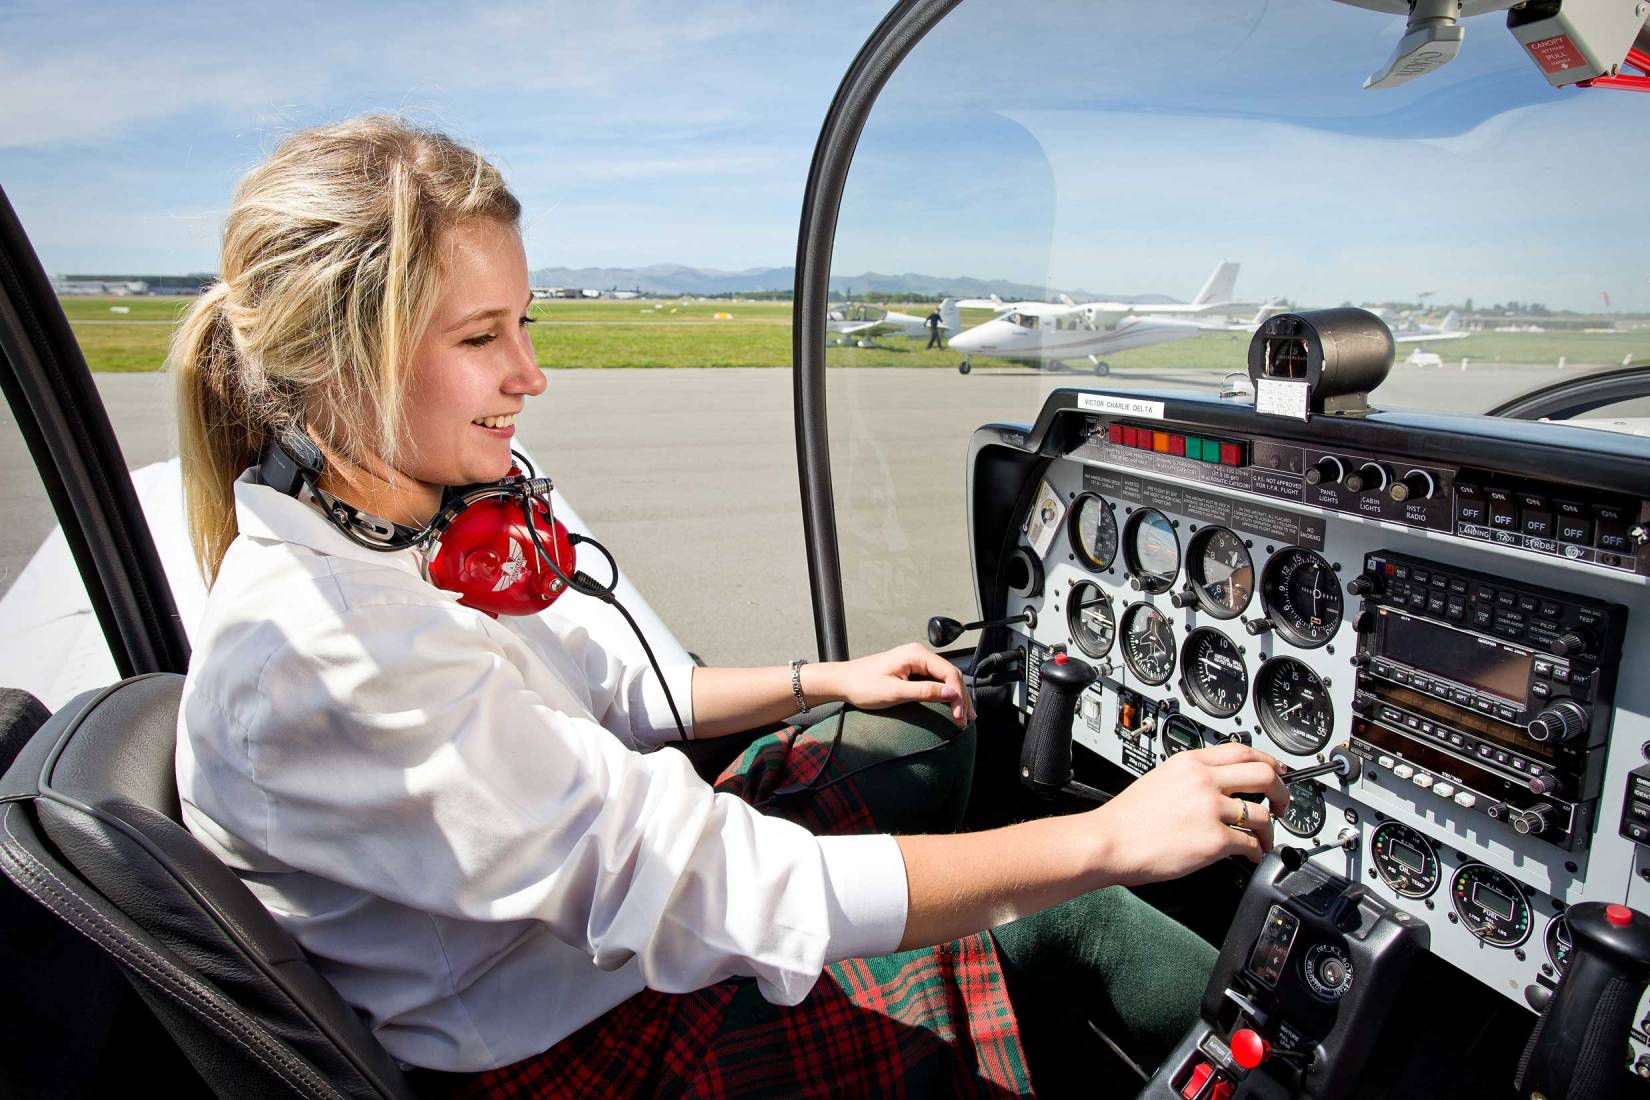 Commercial and editorial portrait of a young female pilot in the cockpit of a small plane.